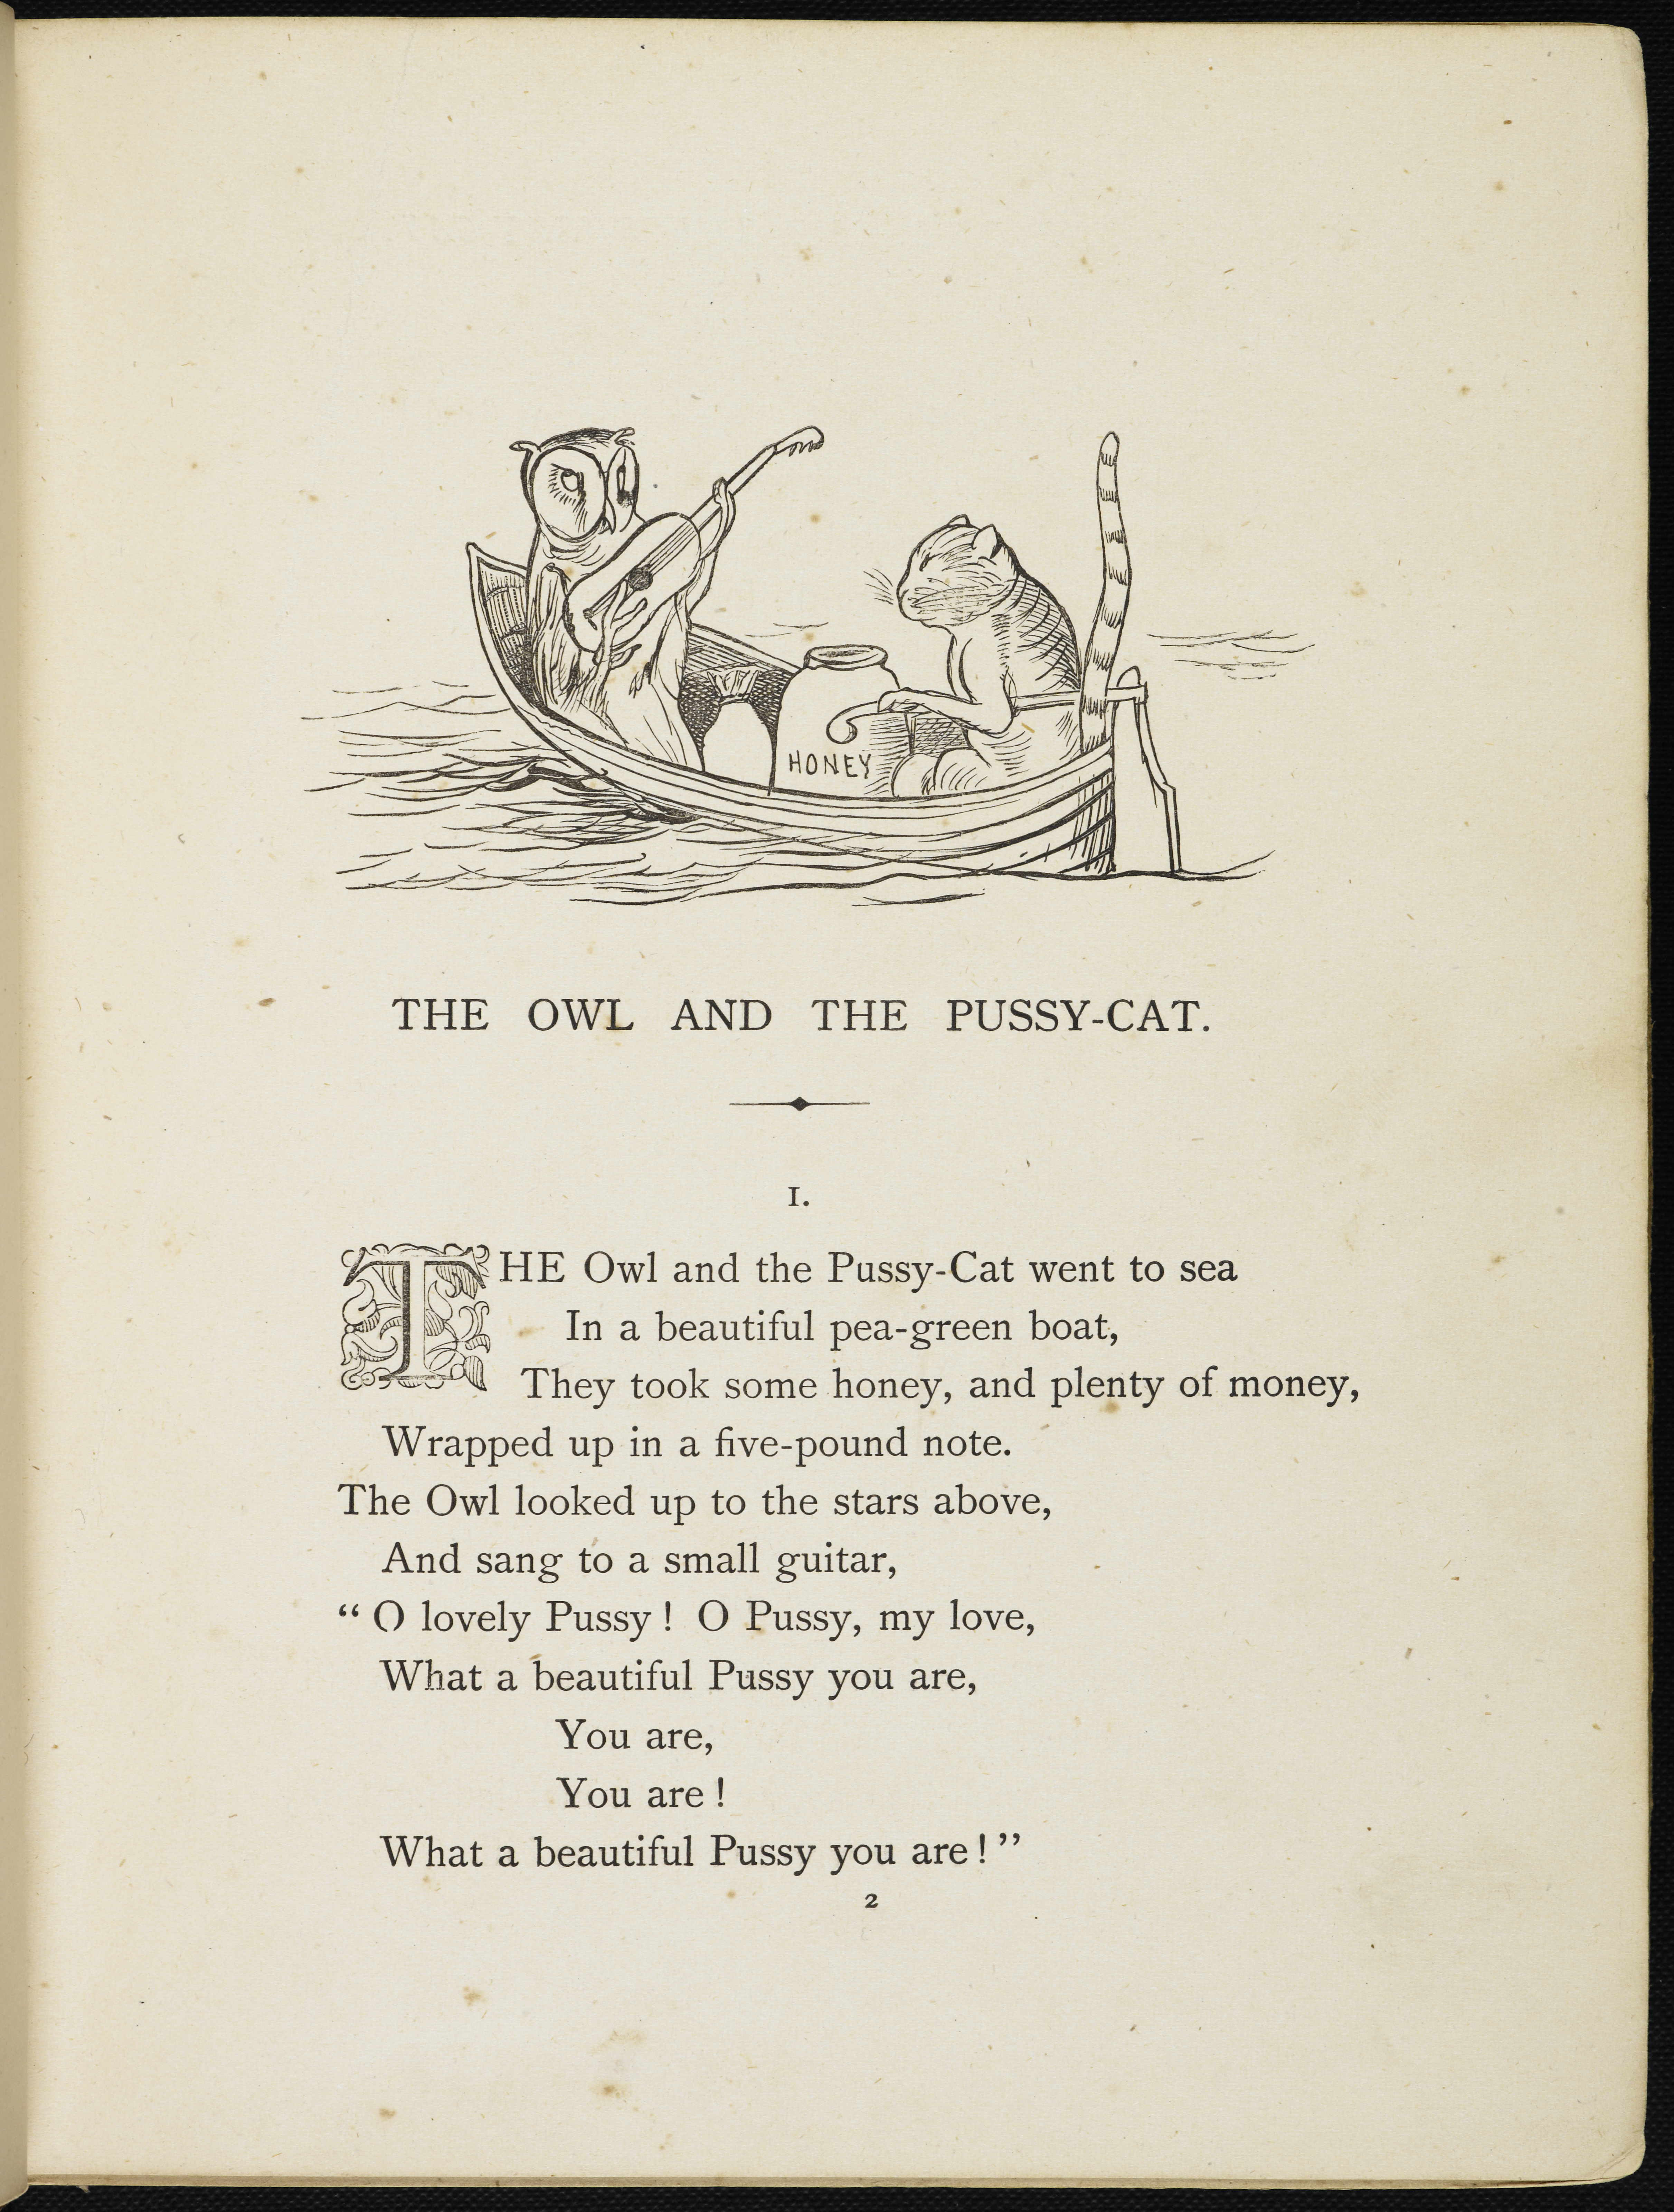 Illustrated page with the first part of the song, and an illustration of an owl and a pussycat in a boat.